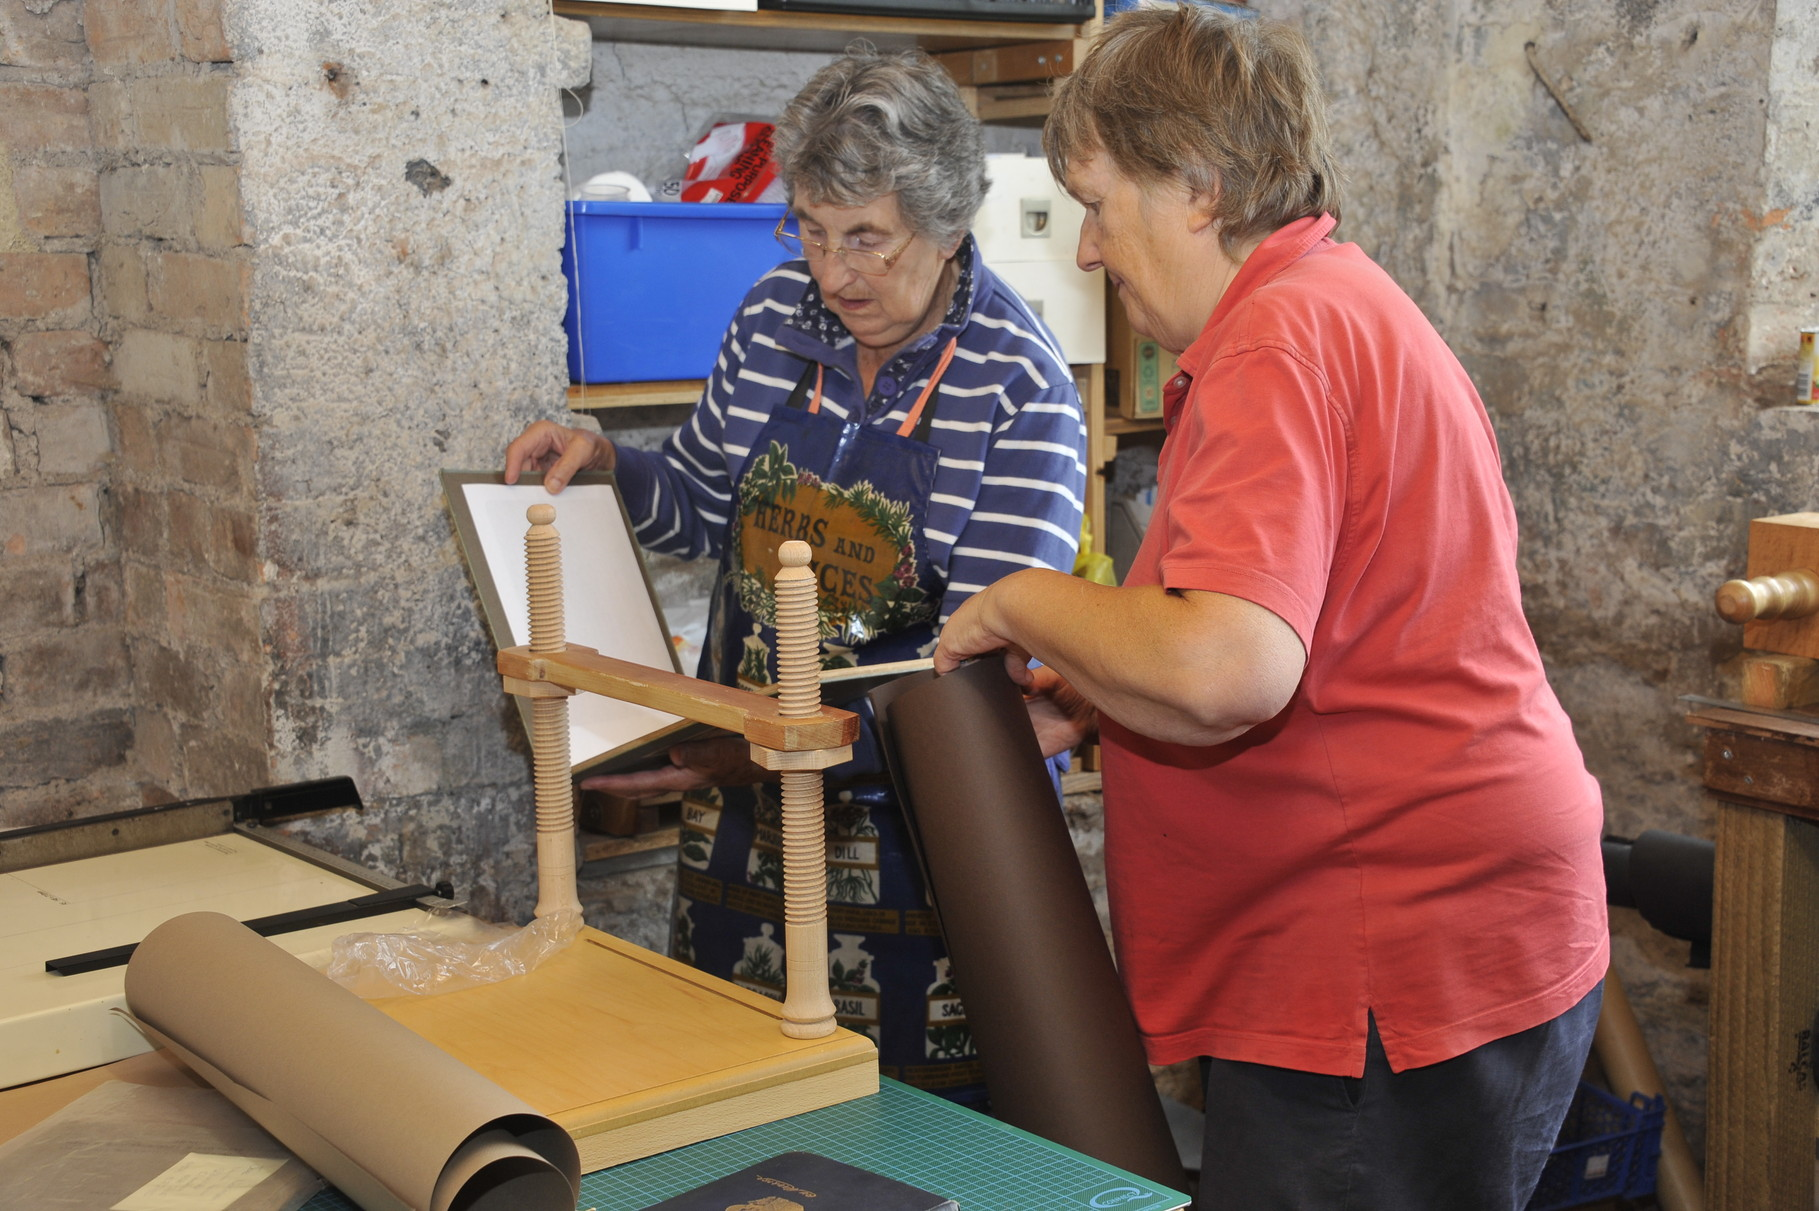 Members of the bookbinding team lovingly restore worse-for-wear books at our very own bindery...